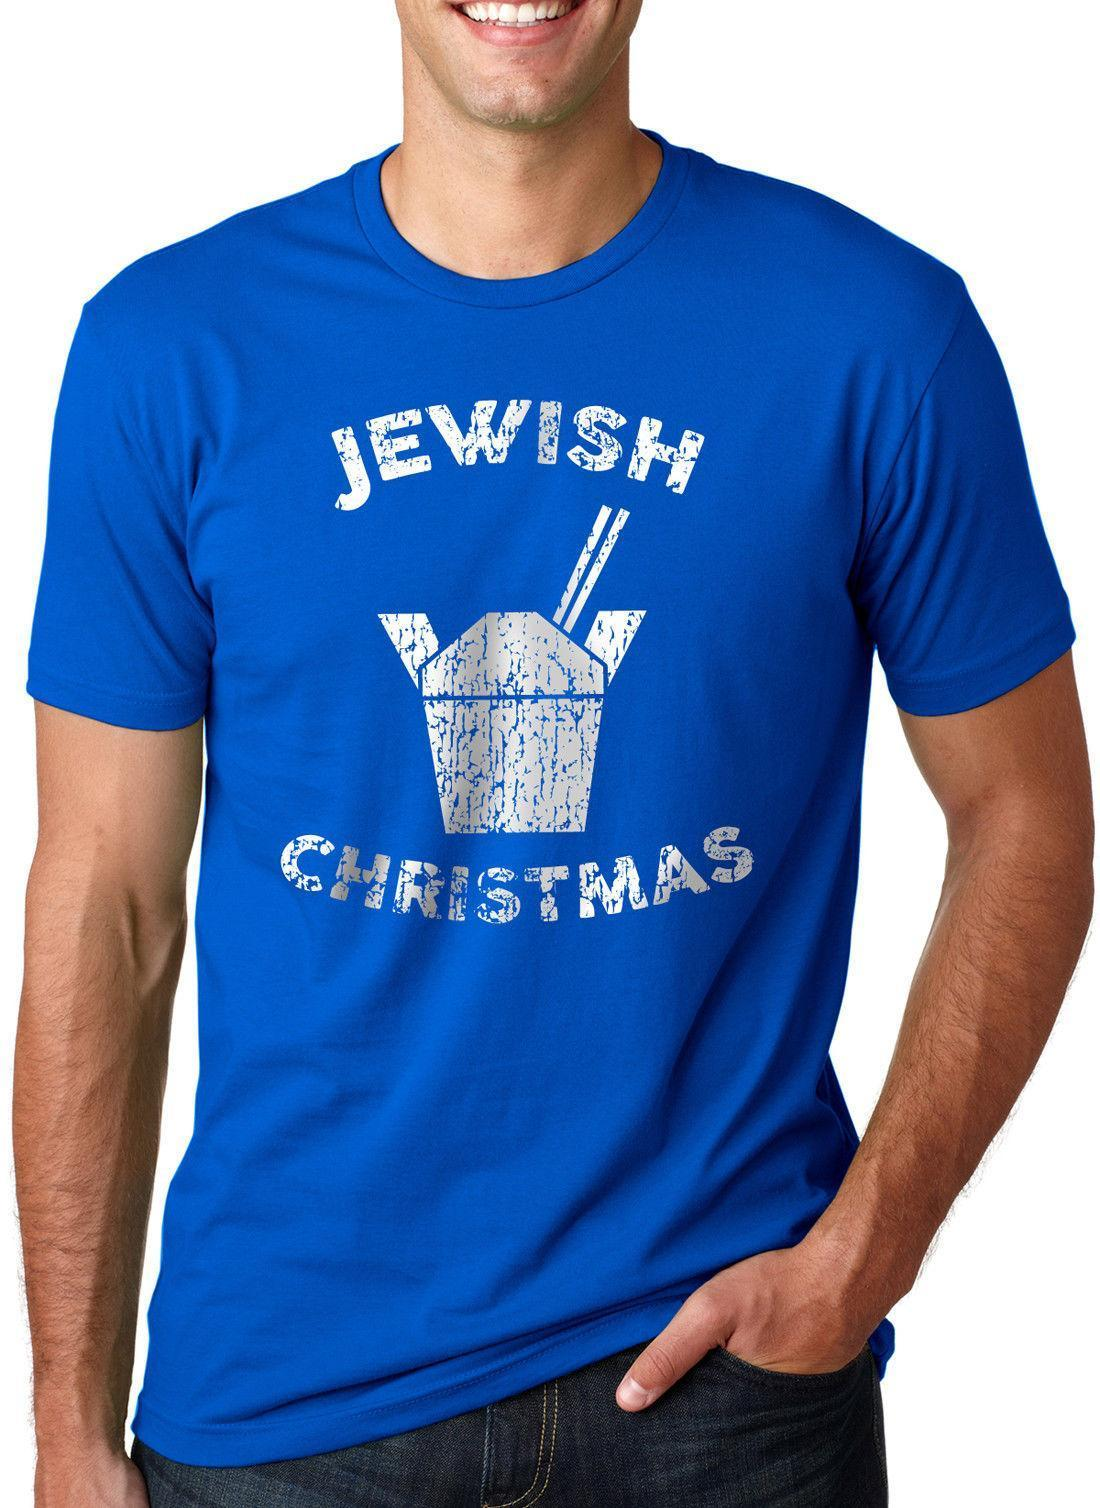 93829e9dd7 Jewish Christmas Funny Chinese Take Out T Shirt Nerdy Holiday Tee For Guys  Best Deal On T Shirts That T Shirt From Amesion87, $11.37| DHgate.Com